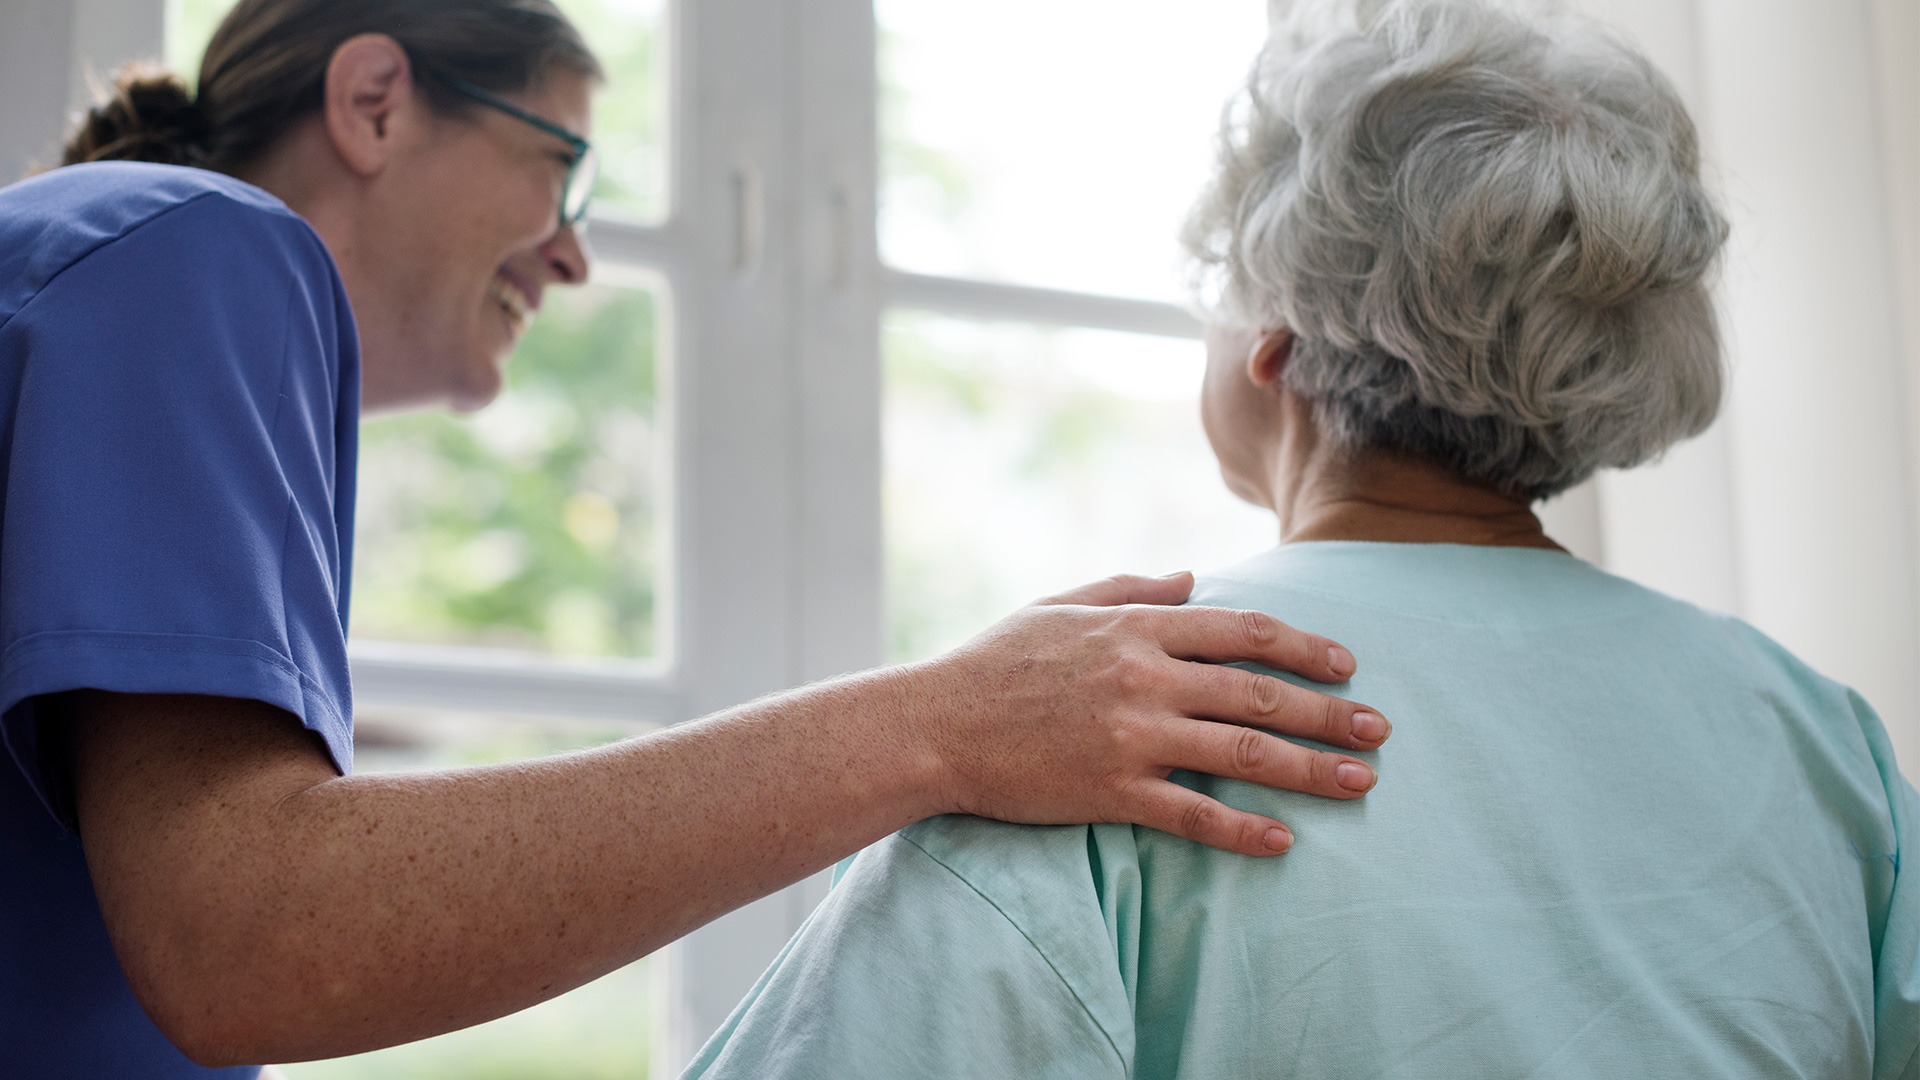 Our team is here to serve you, providing post acute, skilled nursing and rehabilitation services.